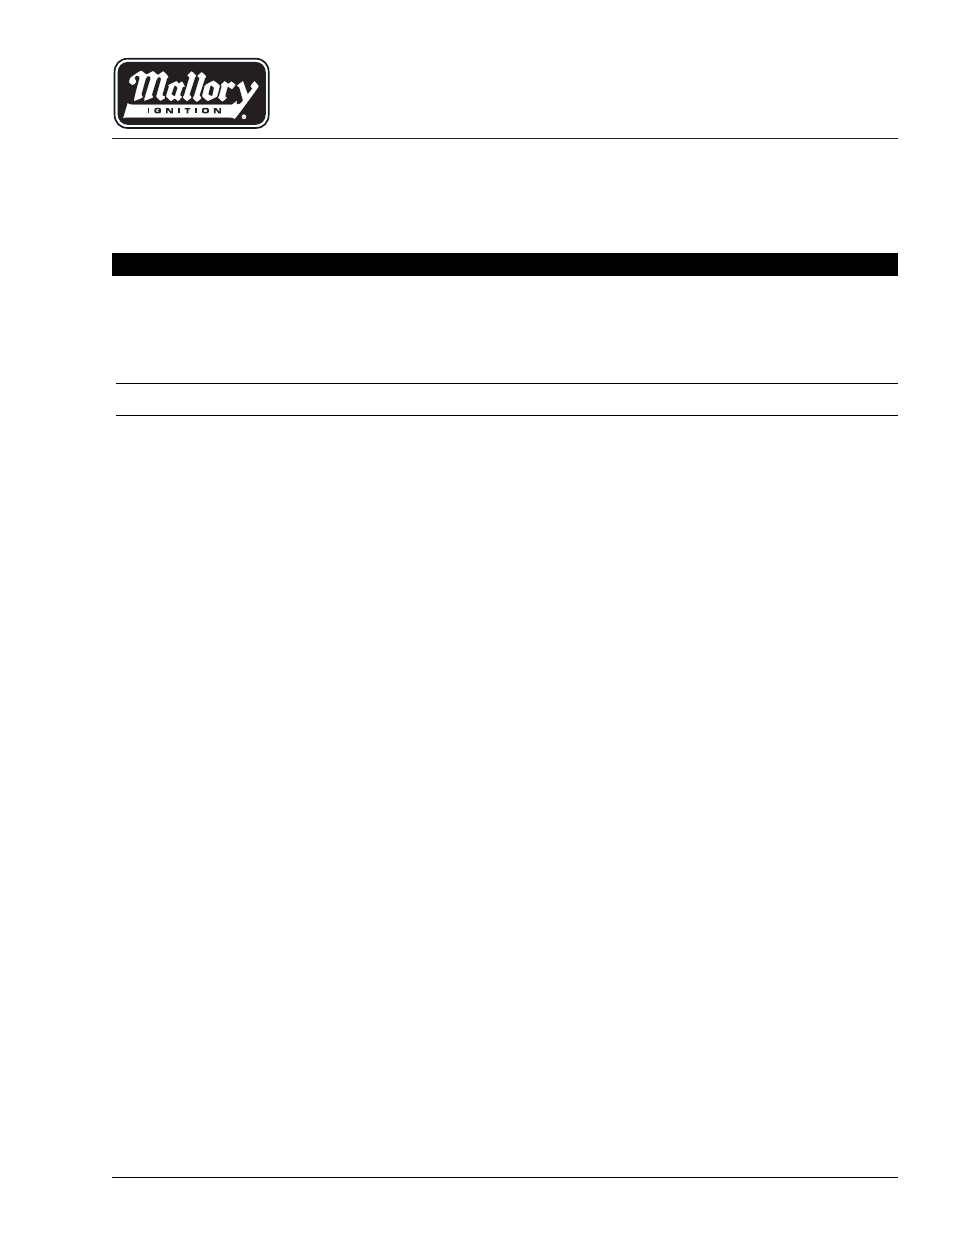 Mallory Ignition Mallory UNILITE DISTRIBUTOR User Manual | 13 pages on